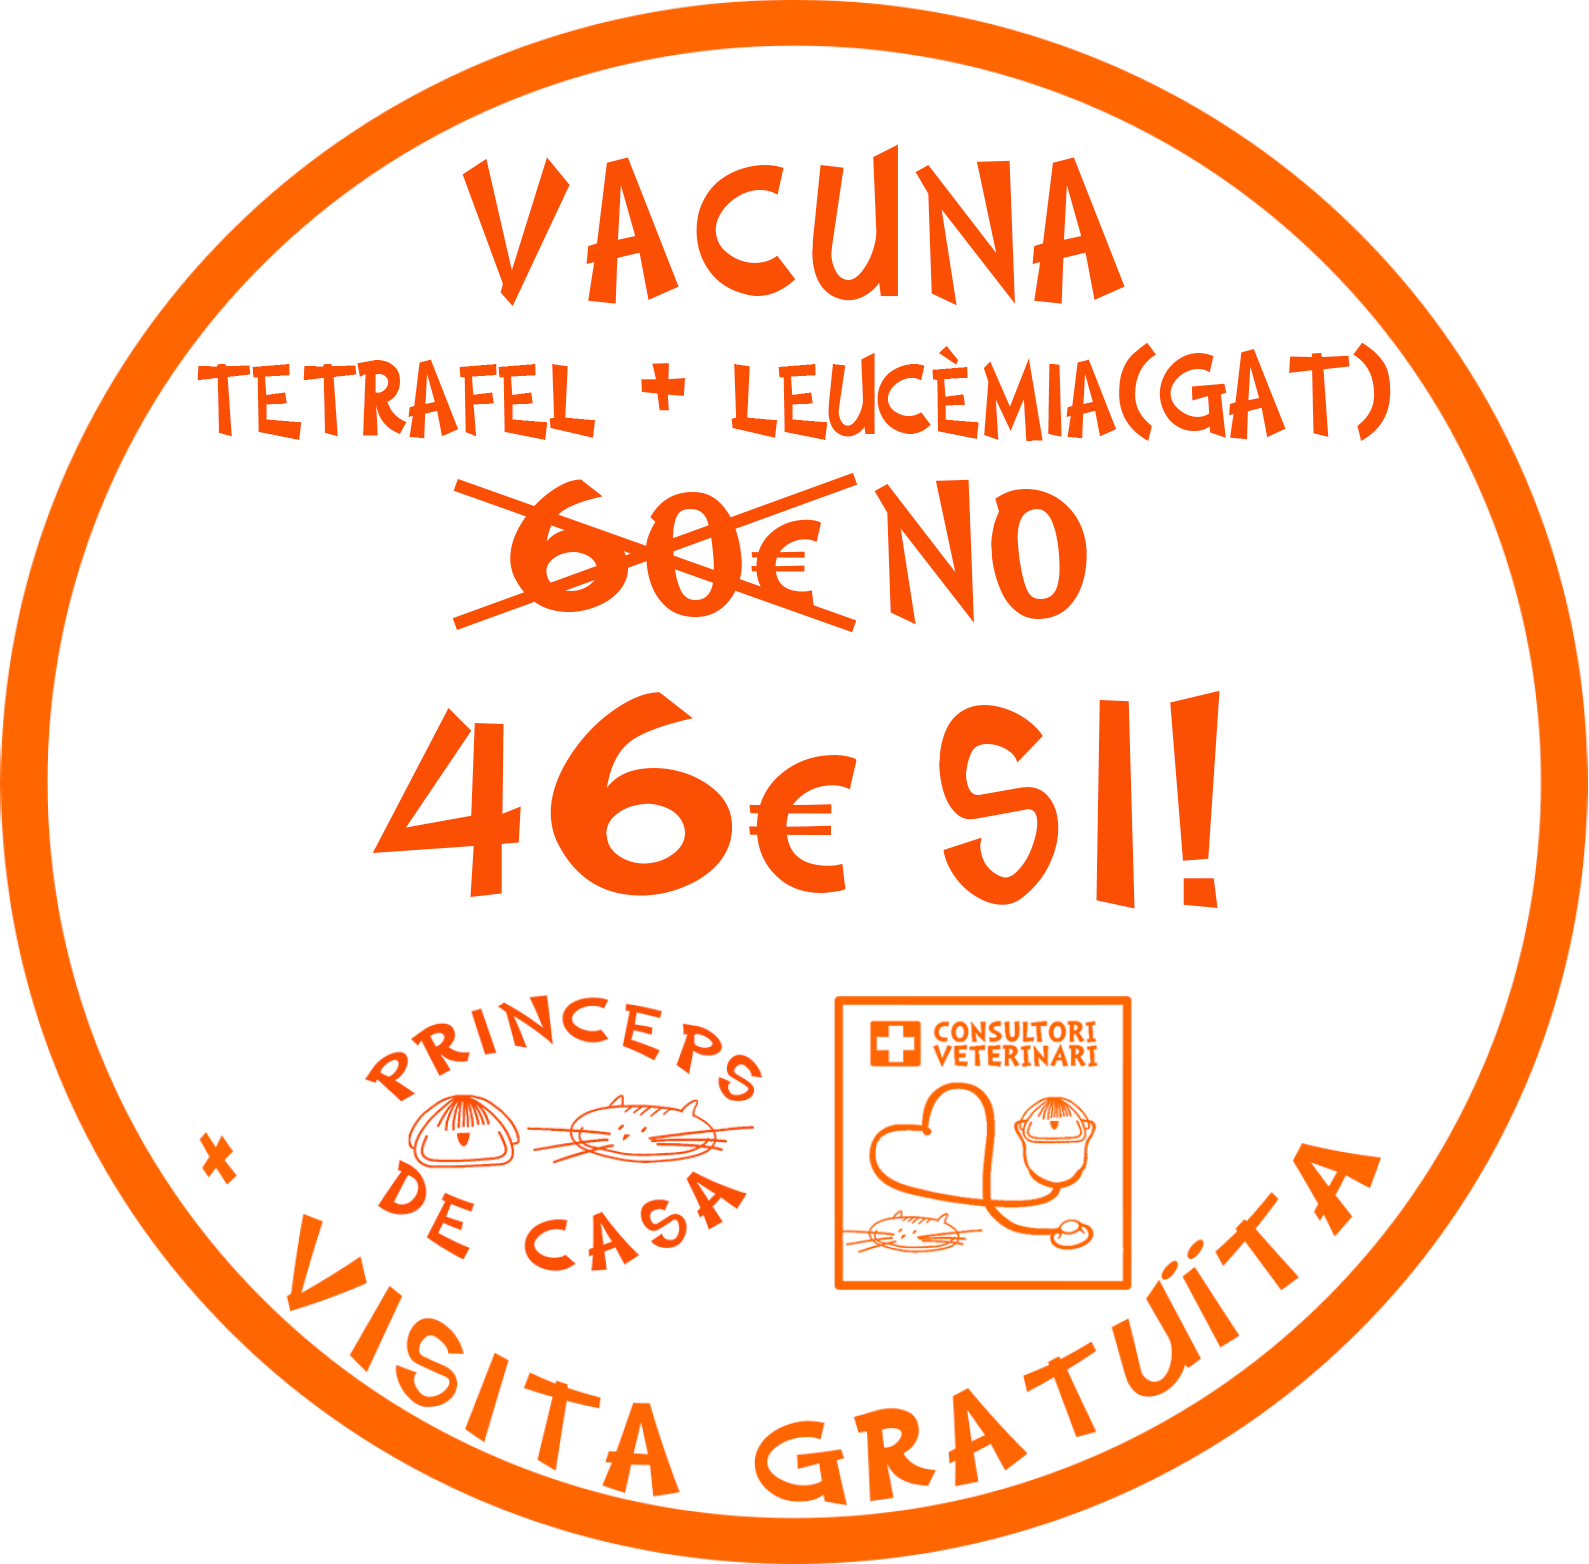 vacuna tetrafel + leucemania gat barcelona bon preu english speaking vet